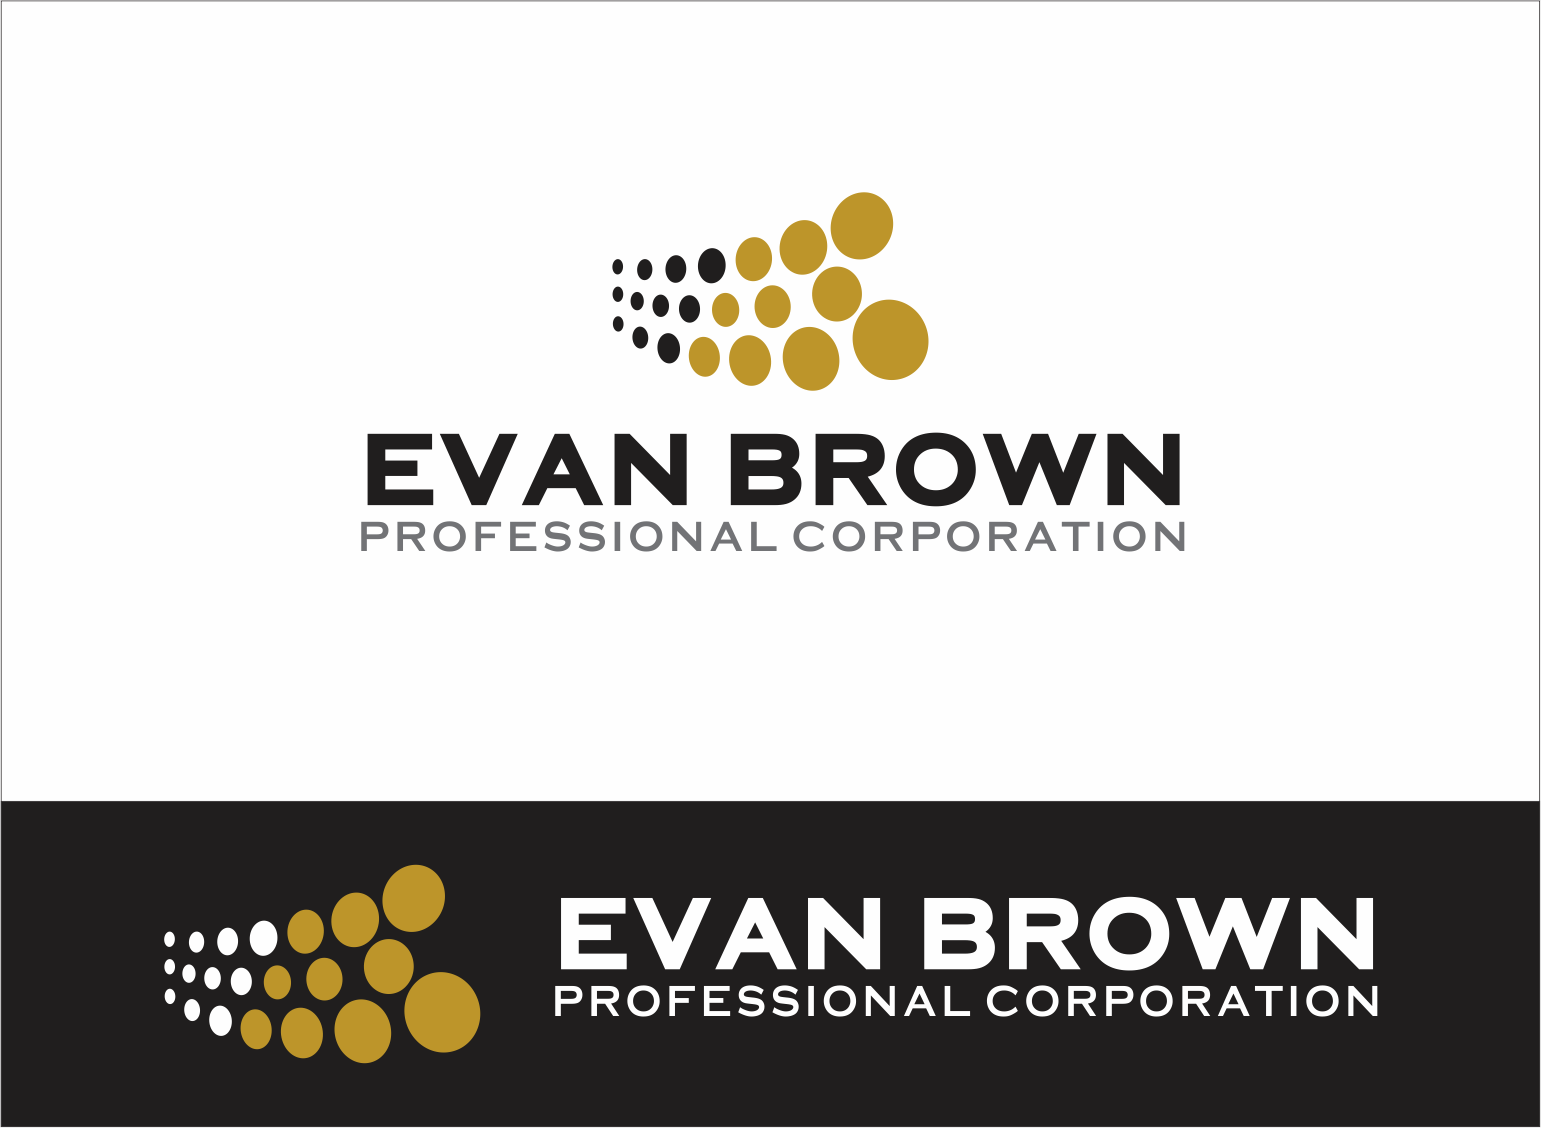 Logo Design by Armada Jamaluddin - Entry No. 100 in the Logo Design Contest Inspiring Logo Design for Evan Brown Professional Corporation.